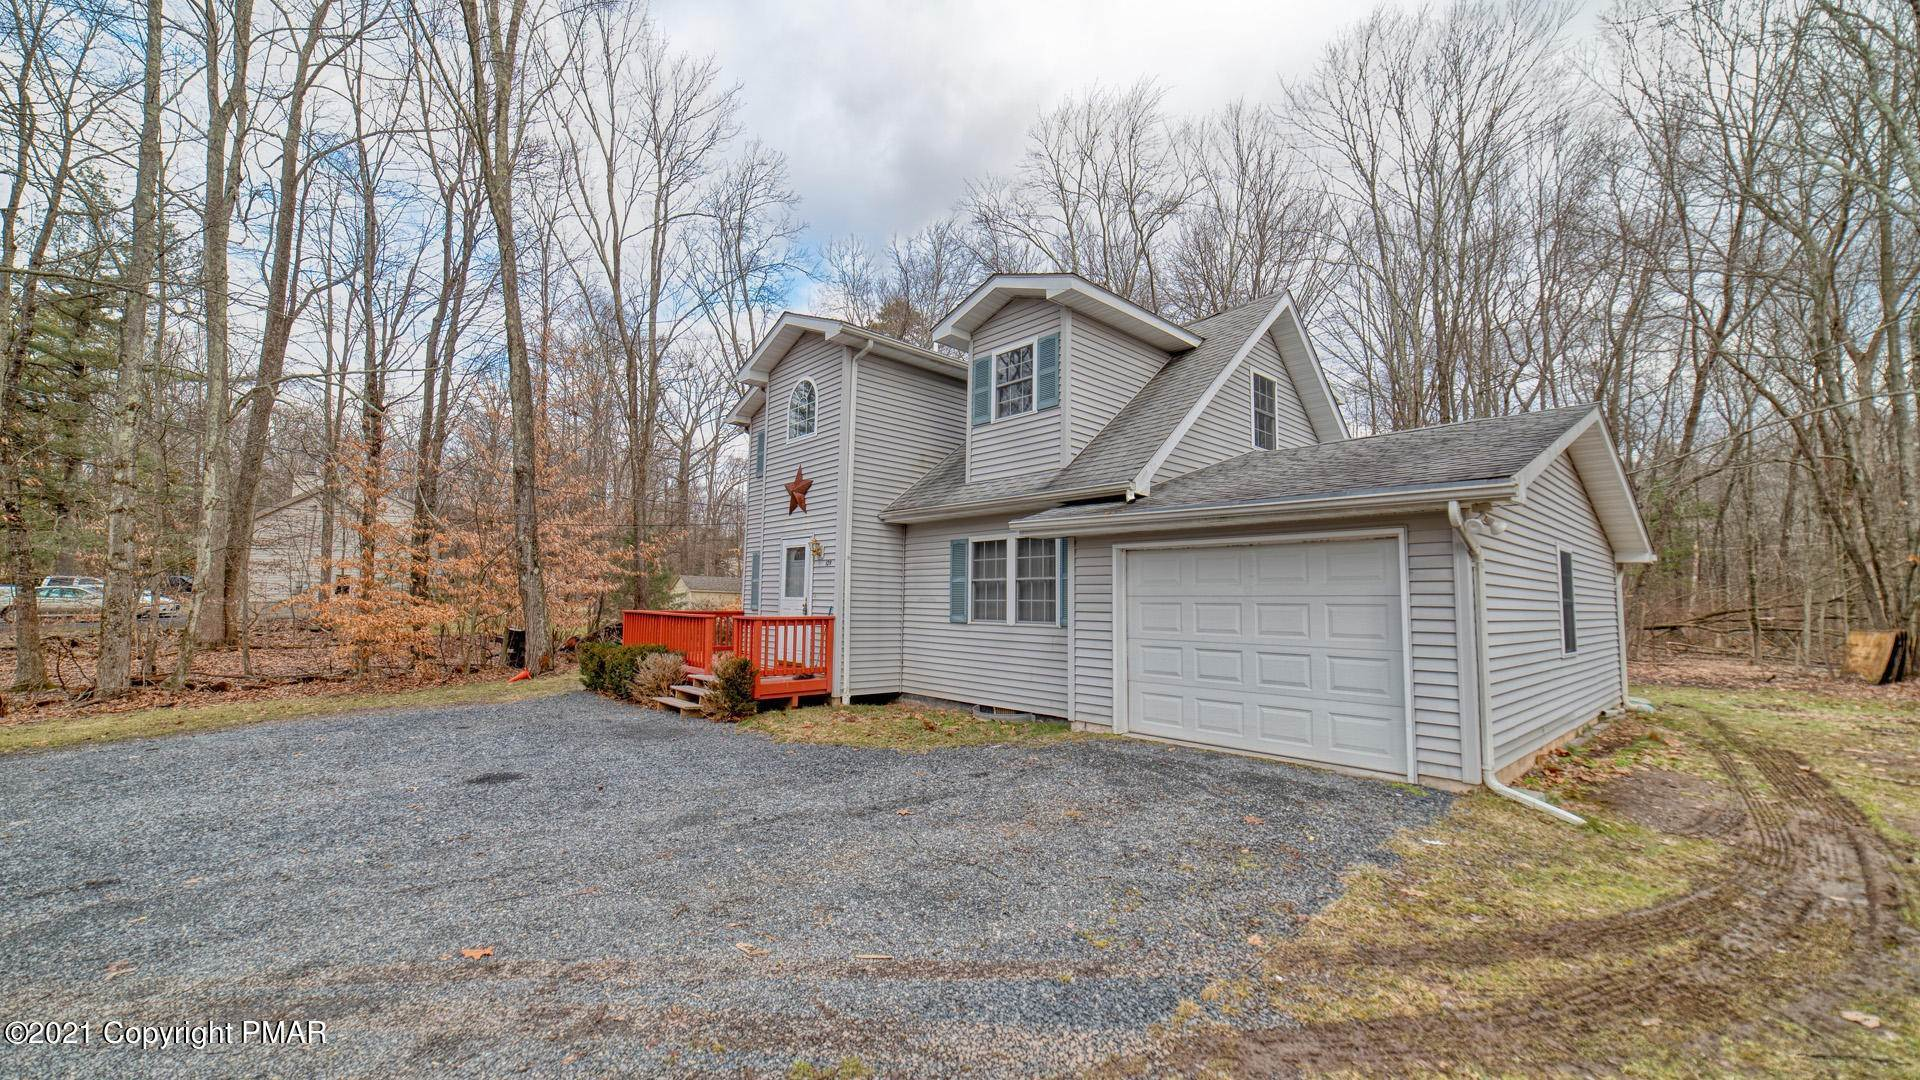 7. Single Family Homes for Sale at 129 Michelle Ln Bartonsville, Pennsylvania 18321 United States